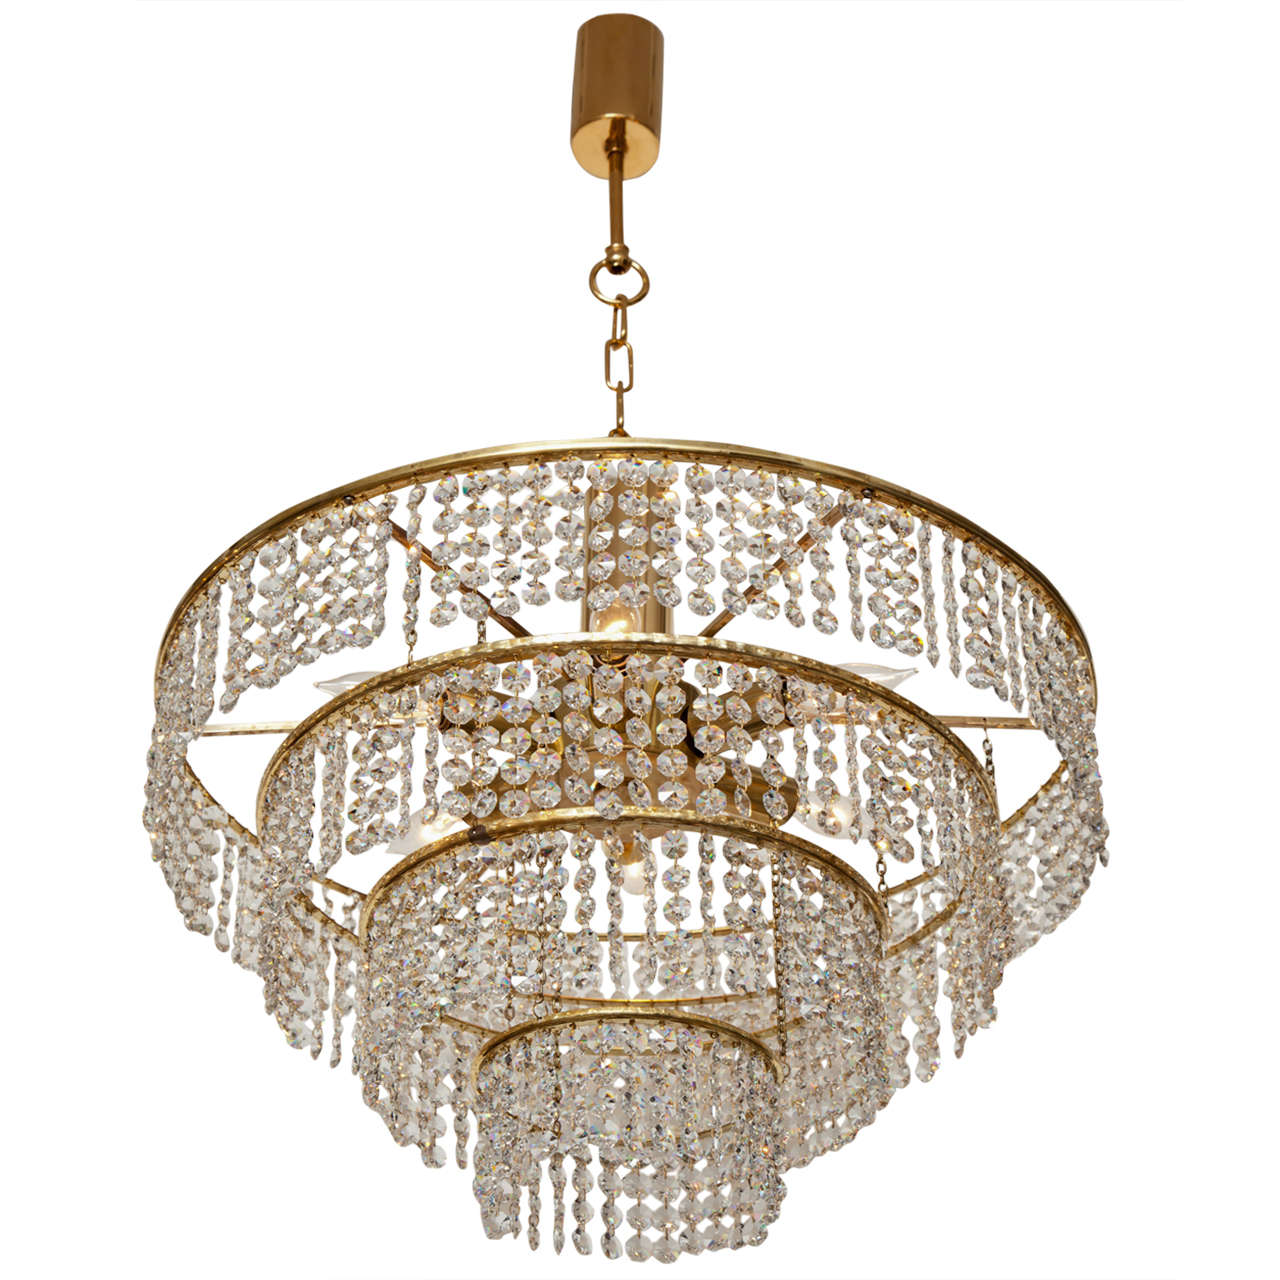 Four Tier German Crystal Chandelier For Sale At 1stdibs